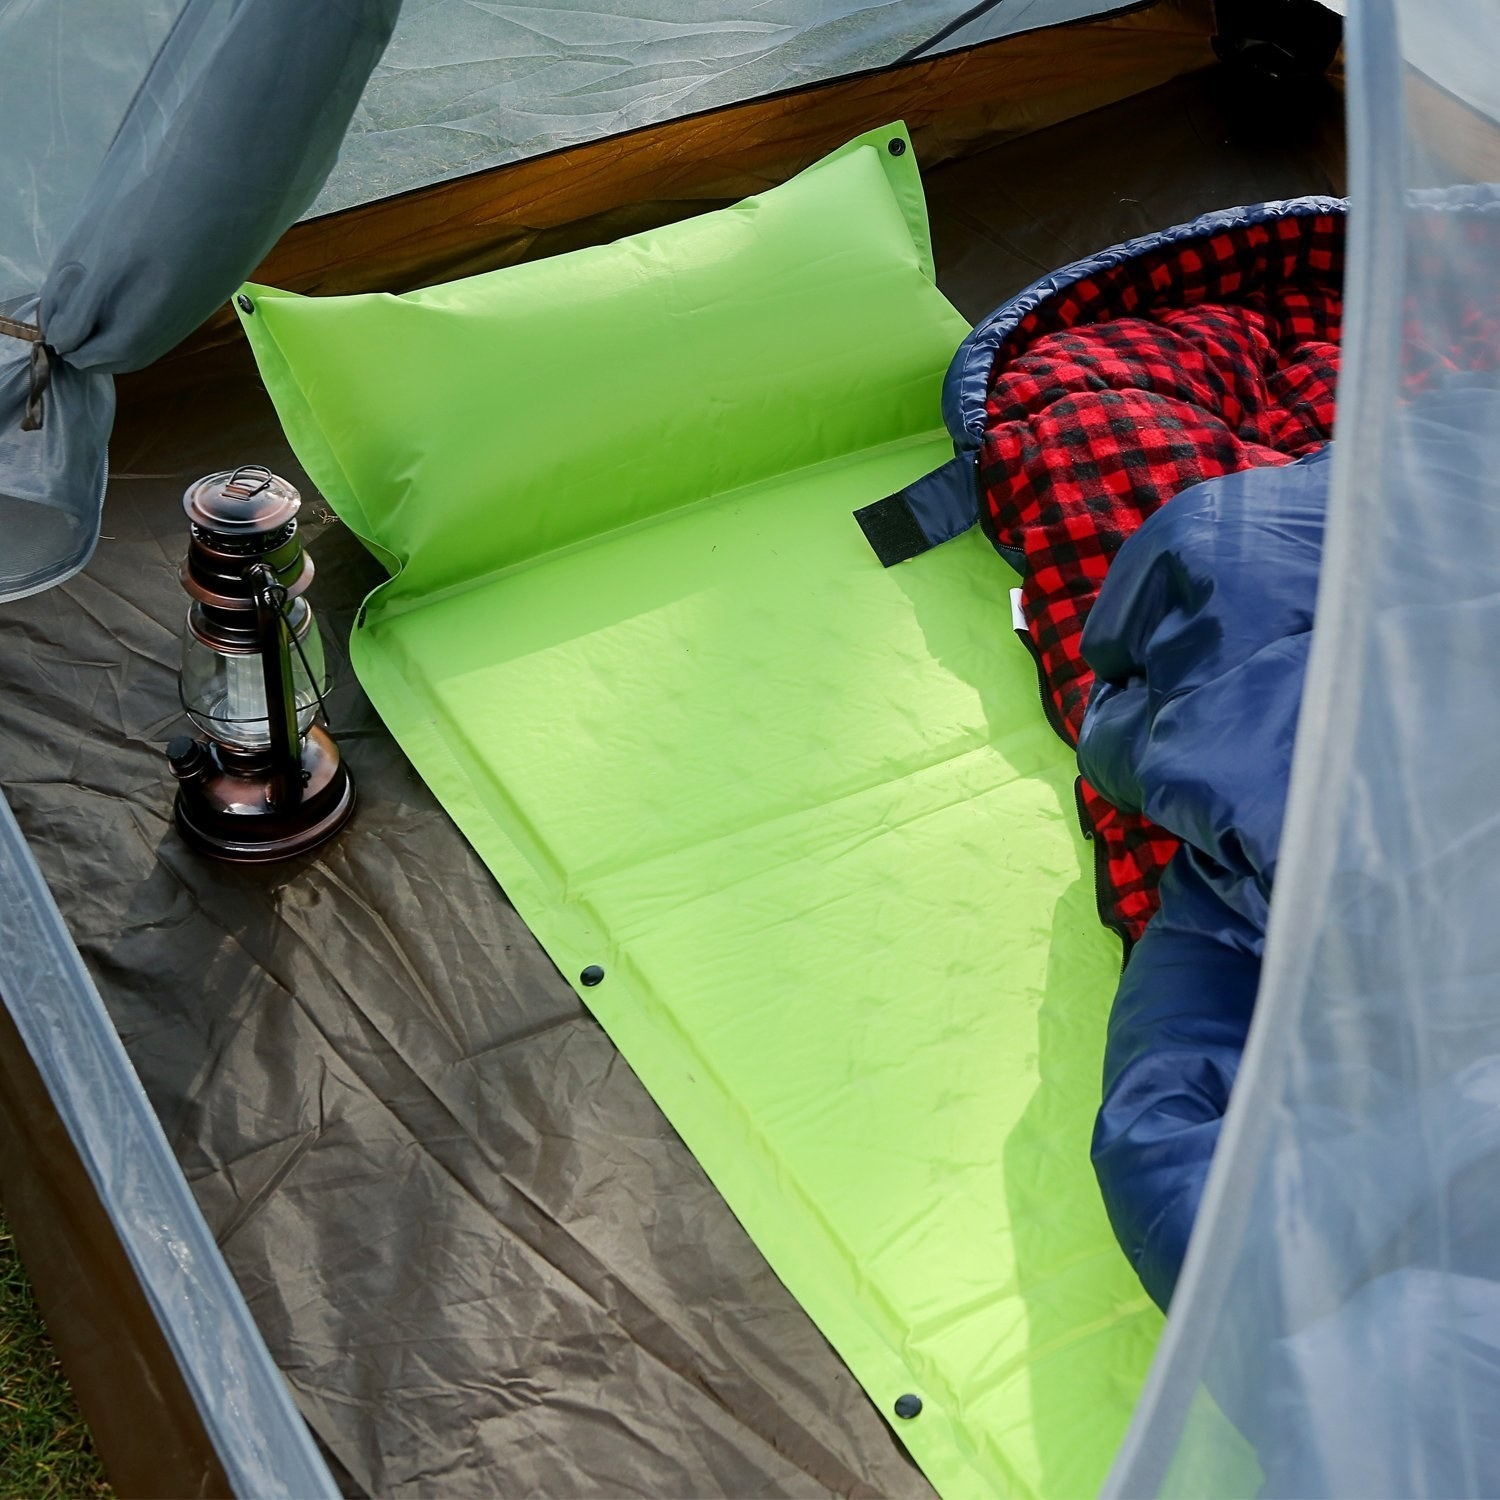 30 Insanely Useful Camping Products You'll Wish You'd Known About Sooner